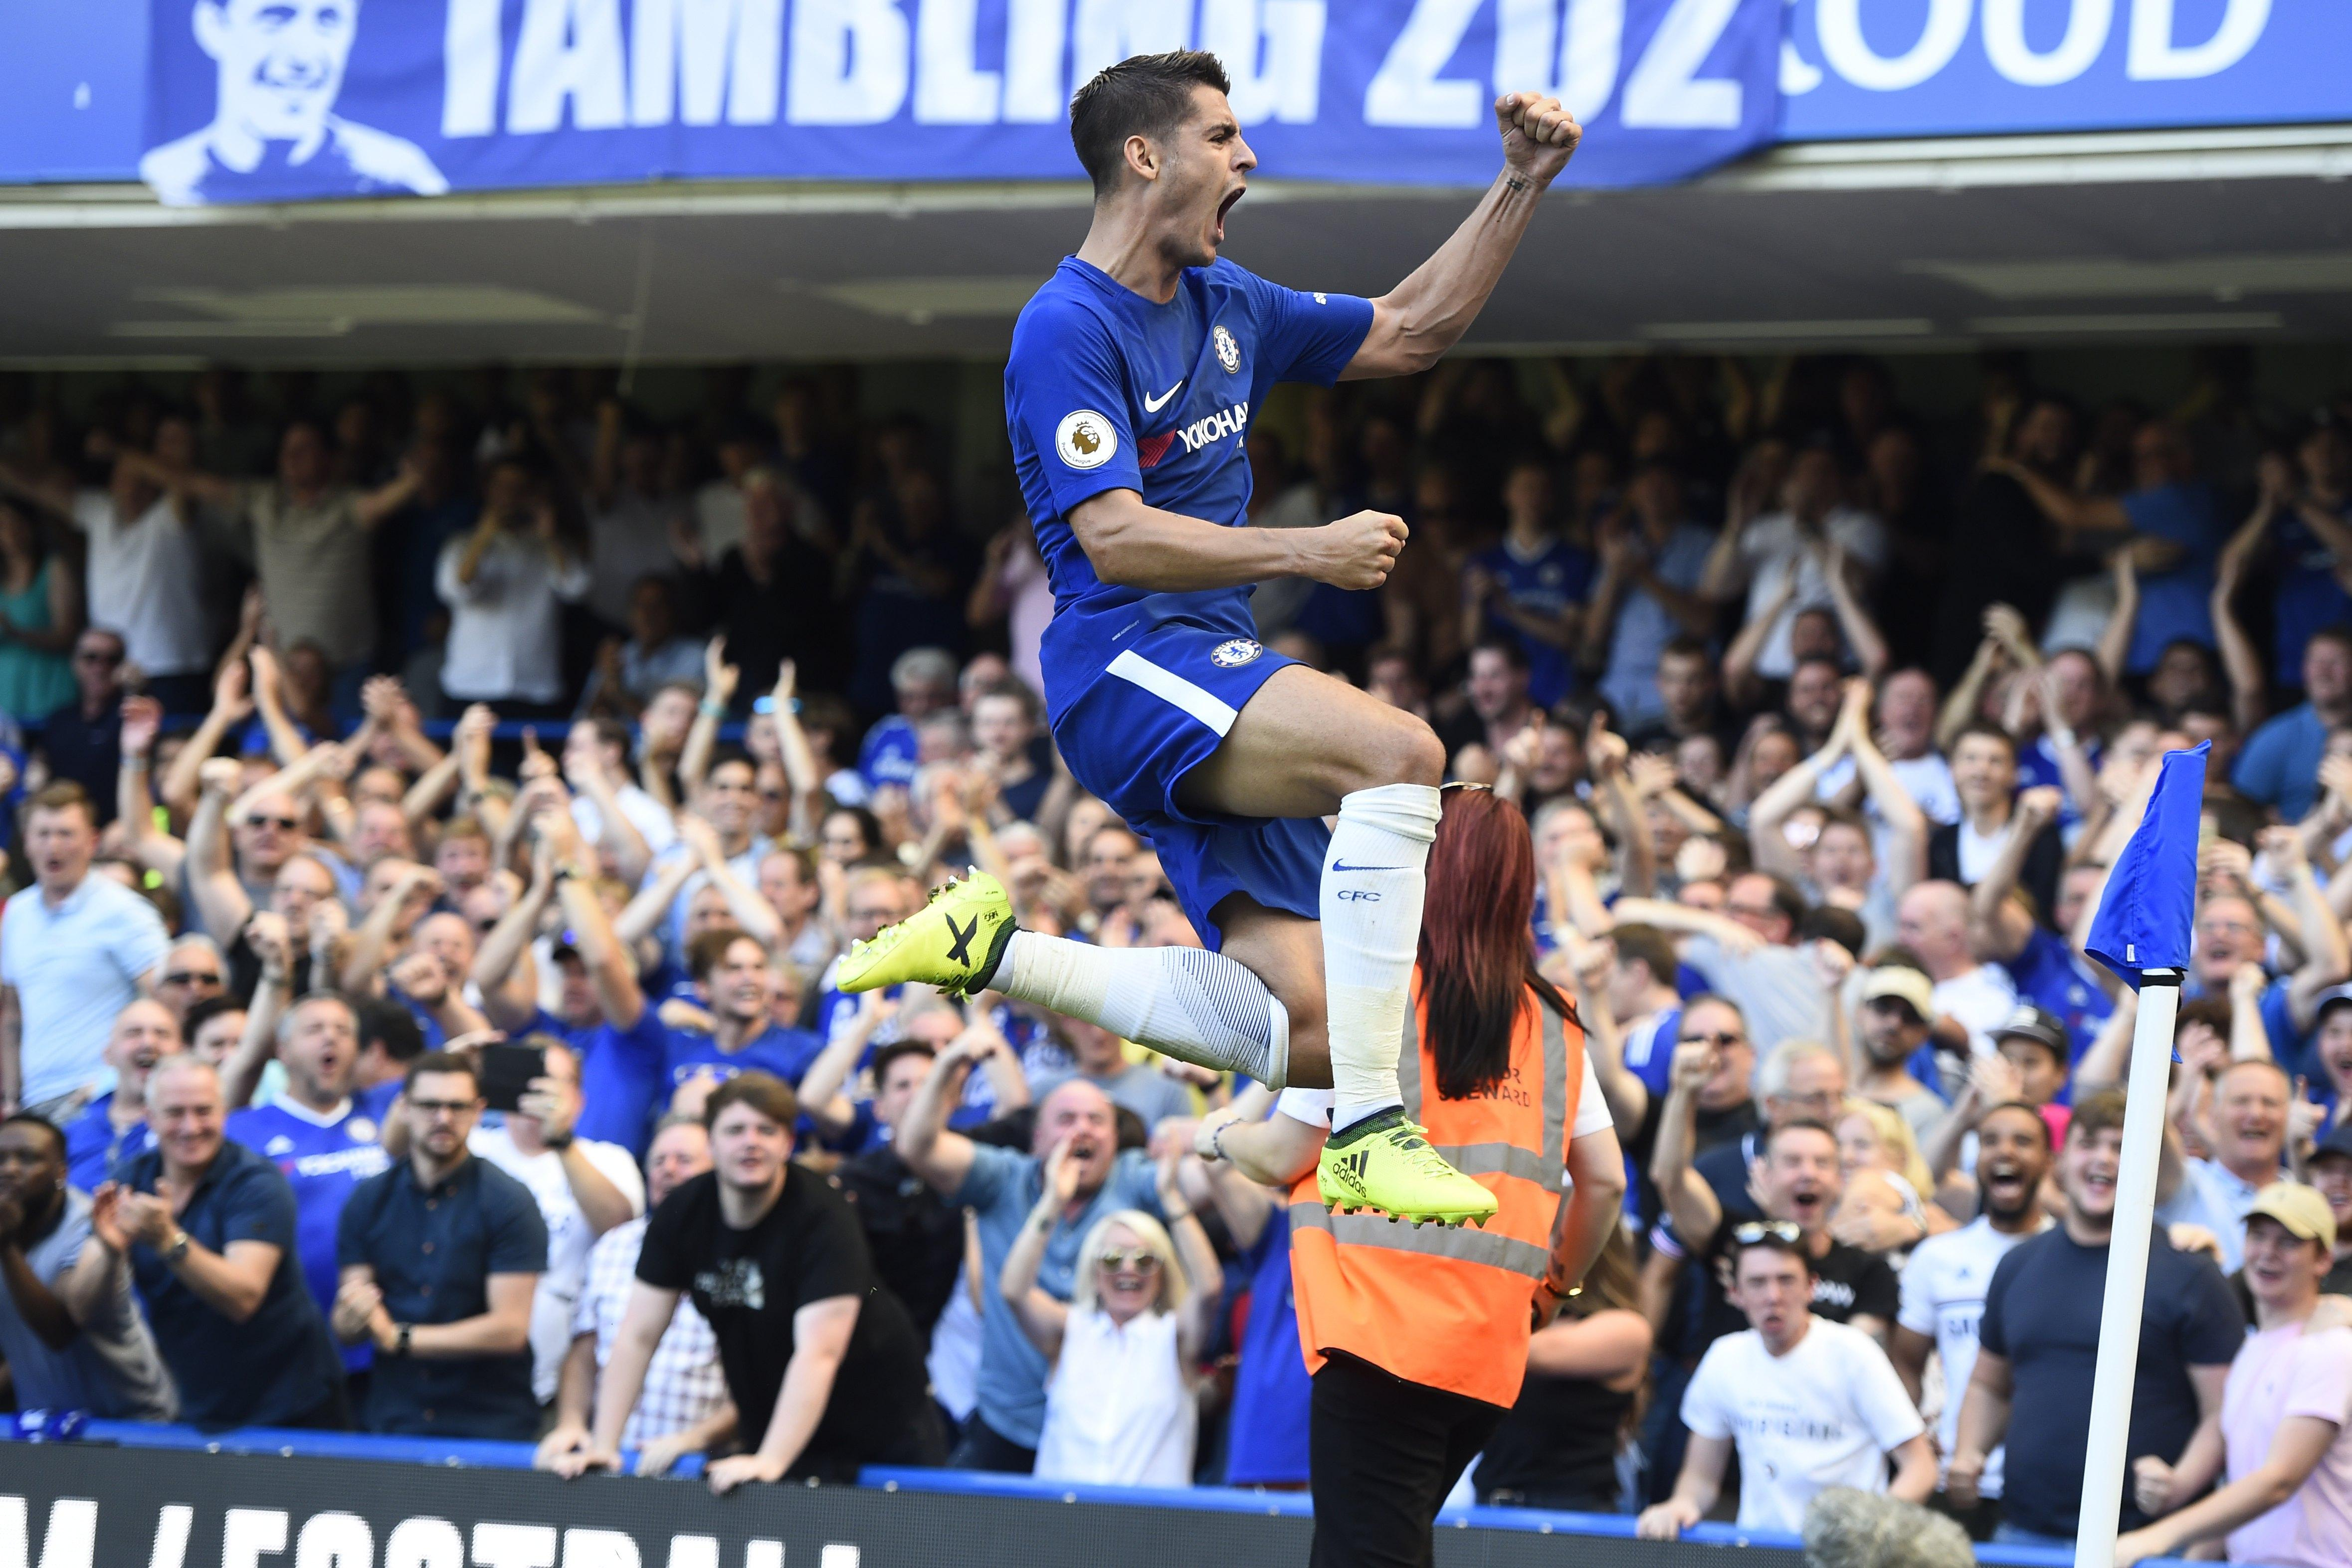 The early promise the Spanish striker showed after joining Chelsea has disappeared in a struggle to settle in England and in the Premier League